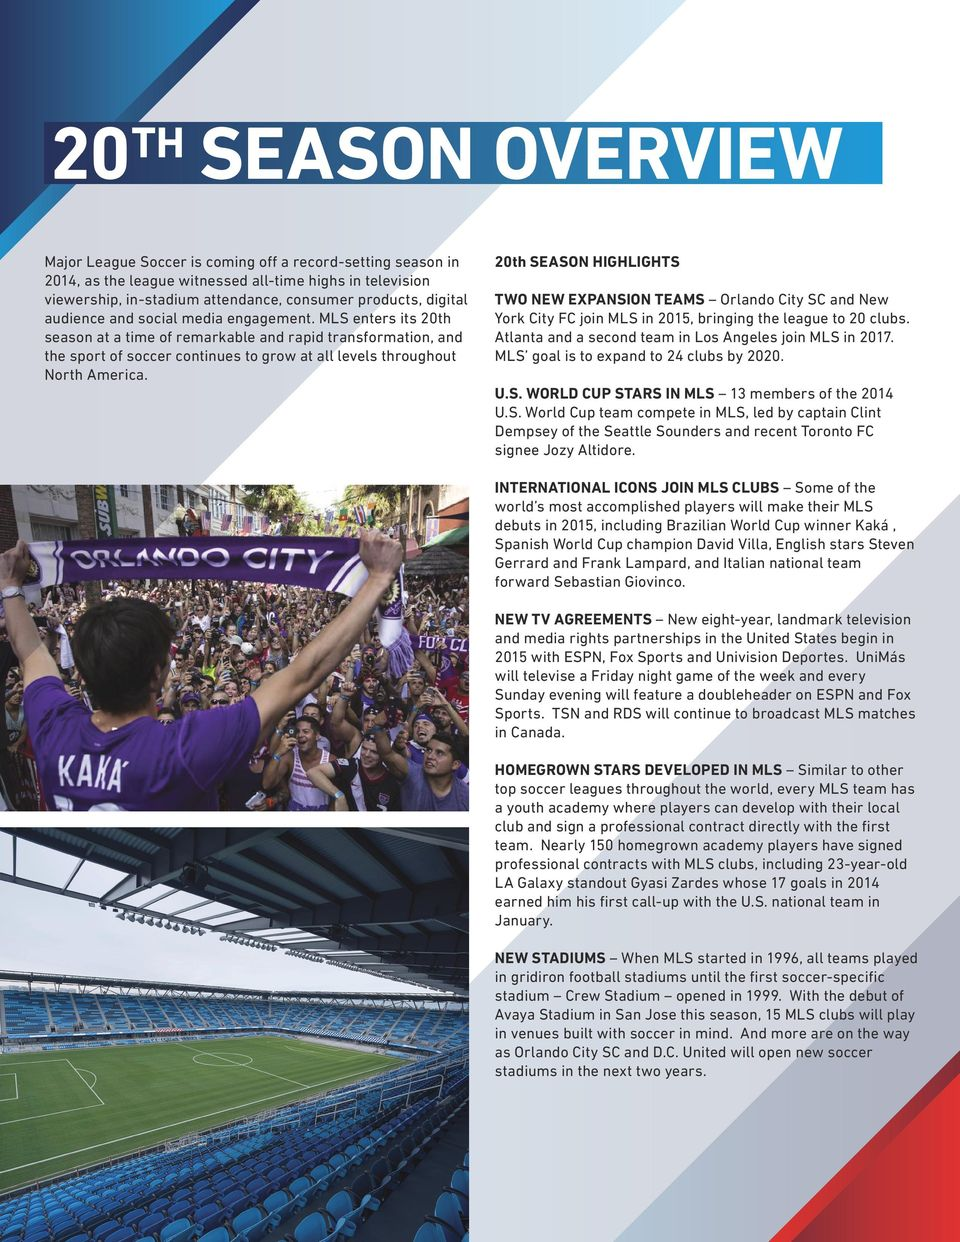 MLS enters its 20th season at a time of remarkable and rapid transformation, and the sport of soccer continues to grow at all levels throughout North America.